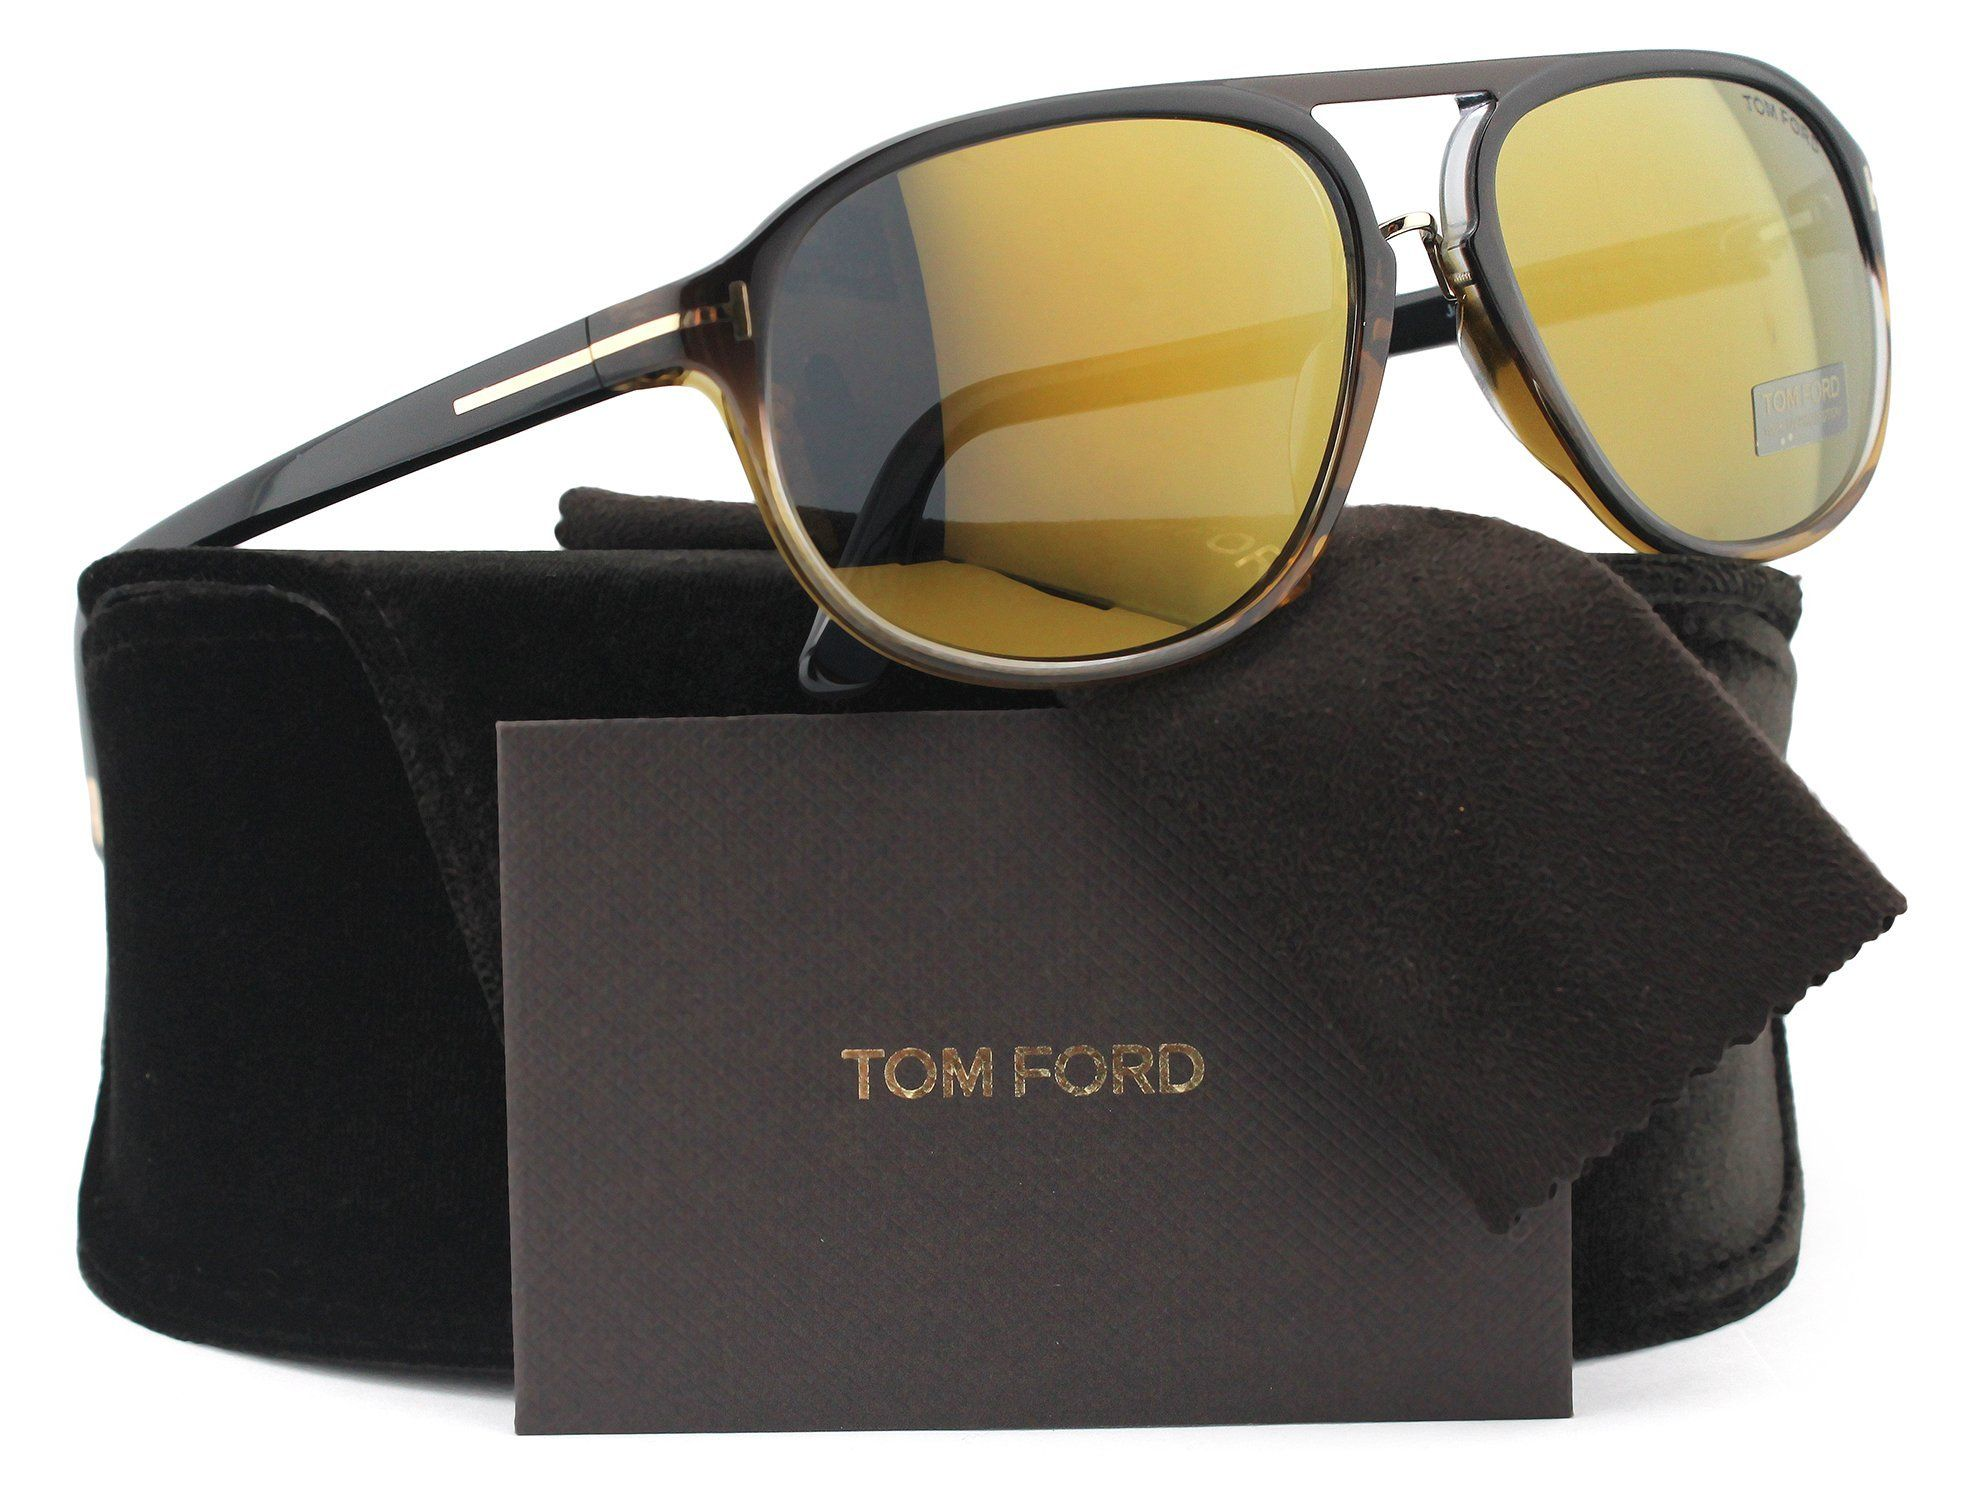 8002f27043385 TOM FORD FT0447 Jacob Sunglasses Black Gradient w Brown Mirror (05C) TF 447  60mm Authentic. Model  FT0447 S Jacob. Color Code  (05C) Black Gradient  w Brown ...